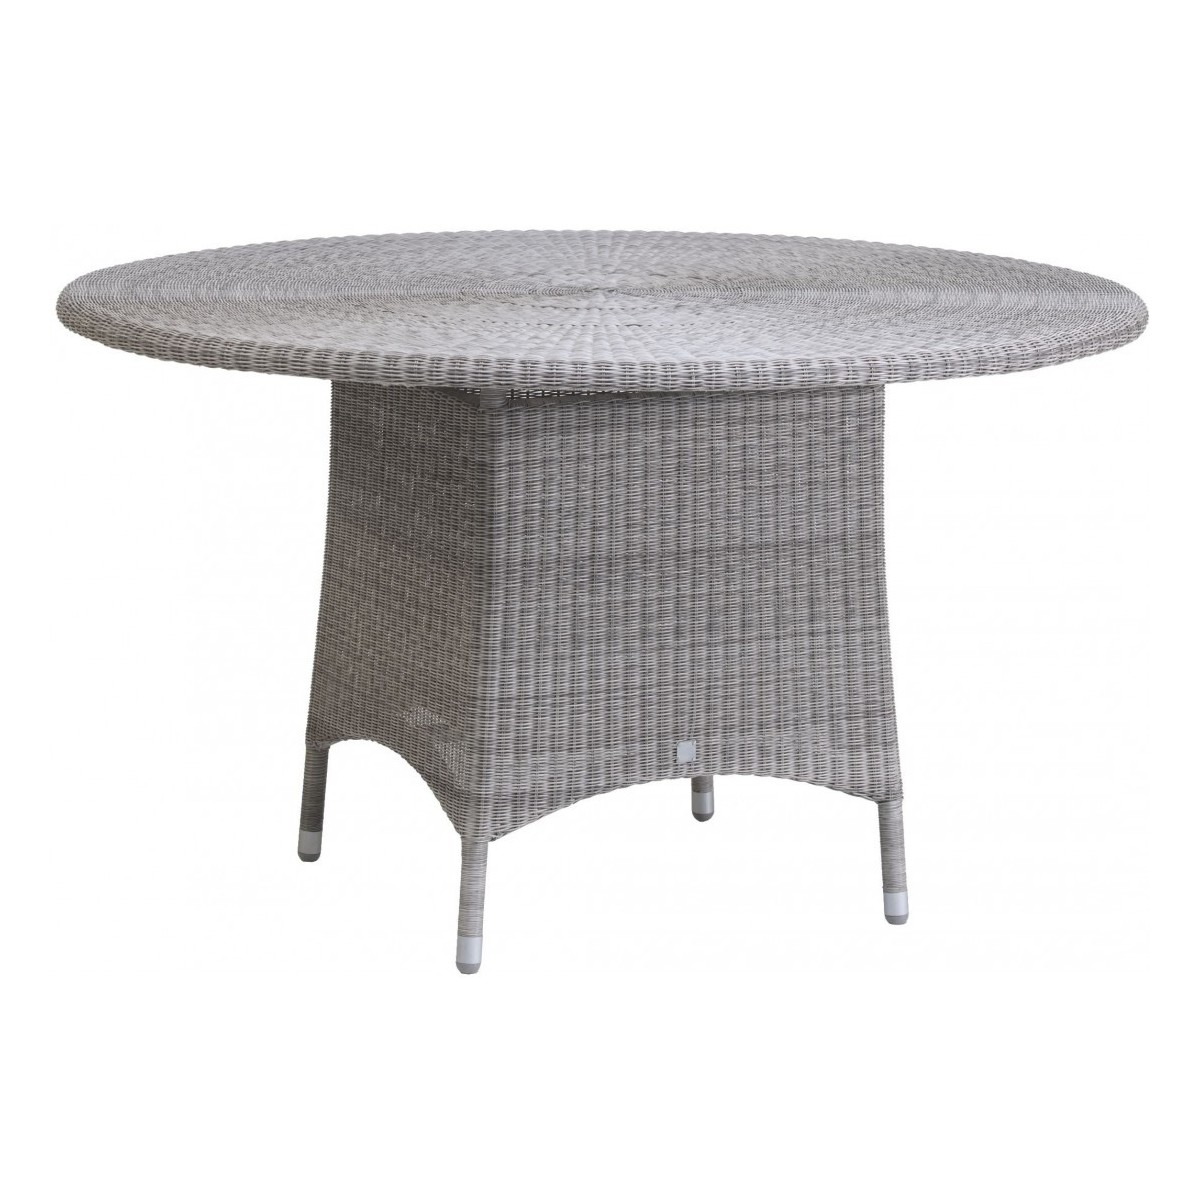 Table Diamètre 130 Résine Gris